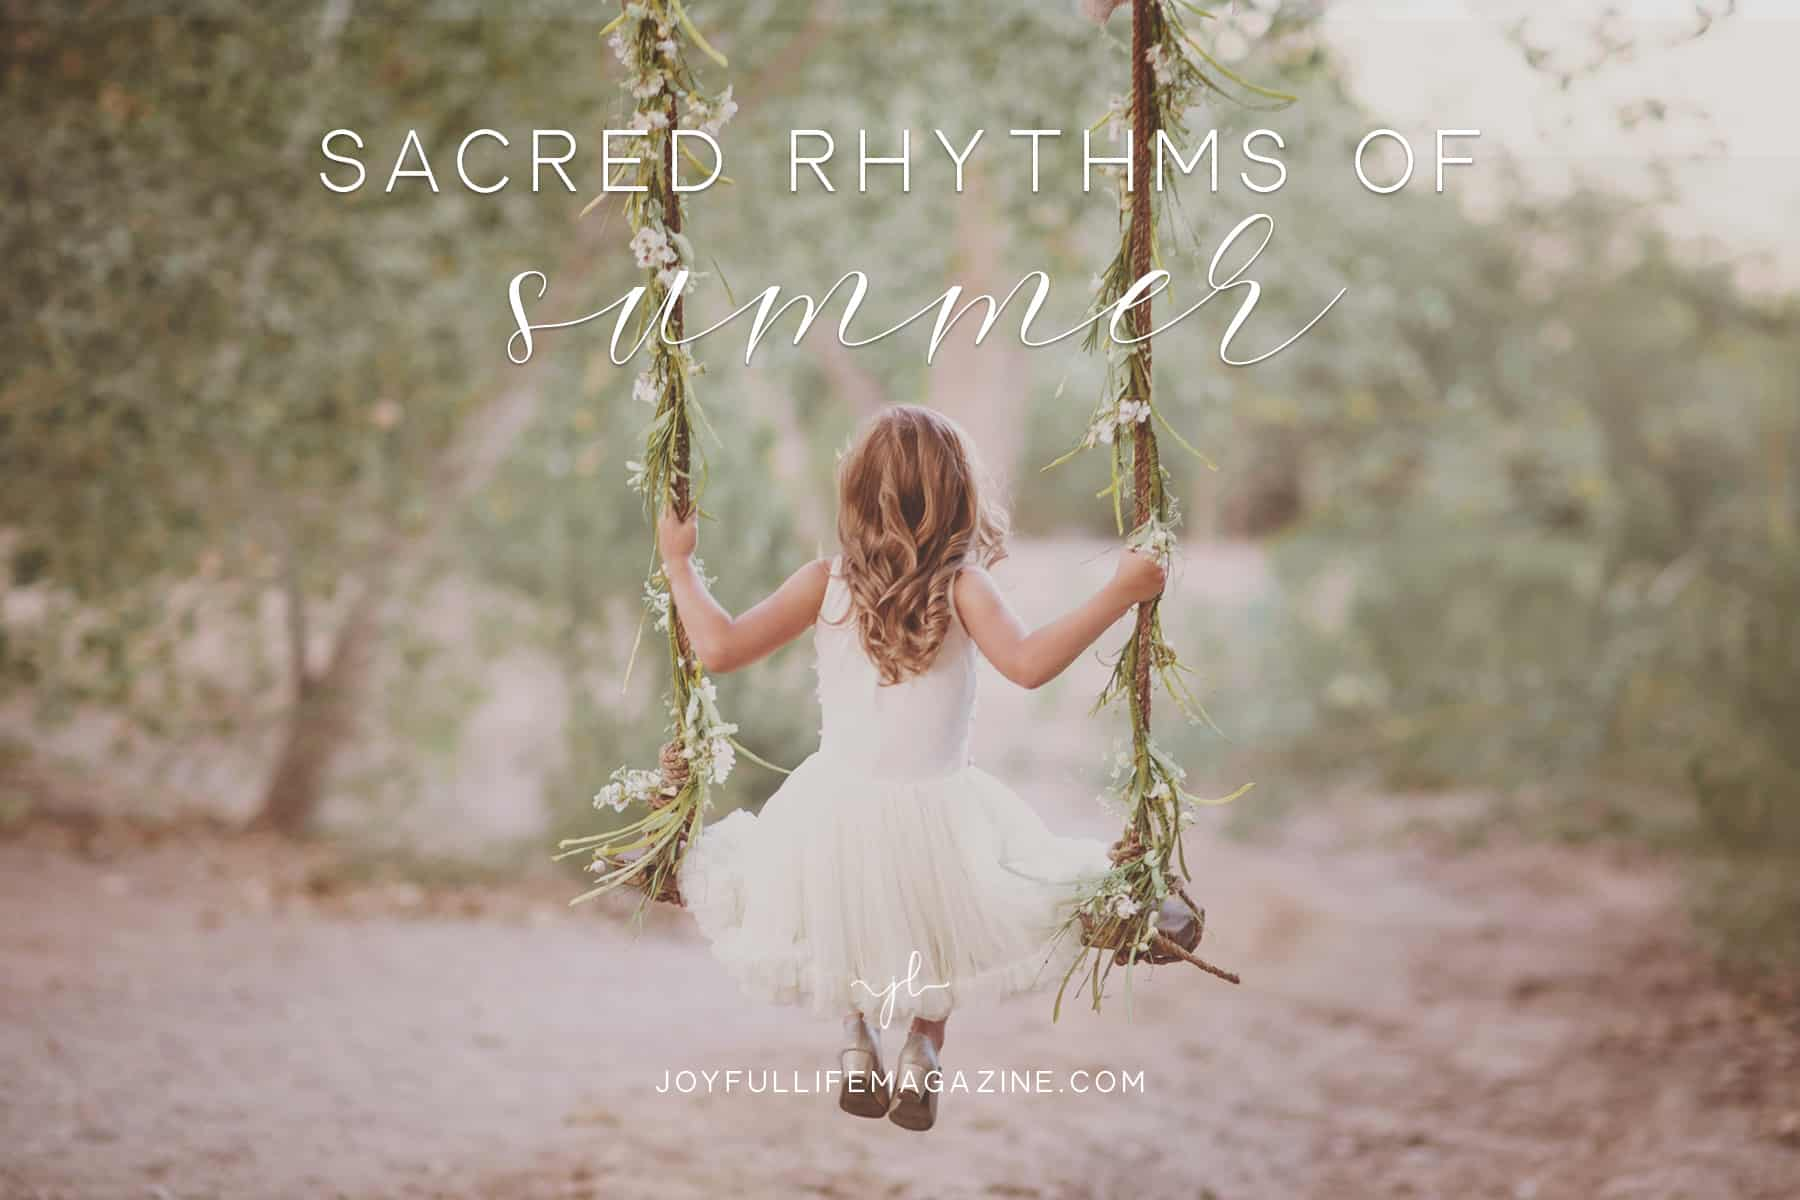 Sacred Rhythms of Summer | by Emily Sue Allen | The Joyful Life Magazine